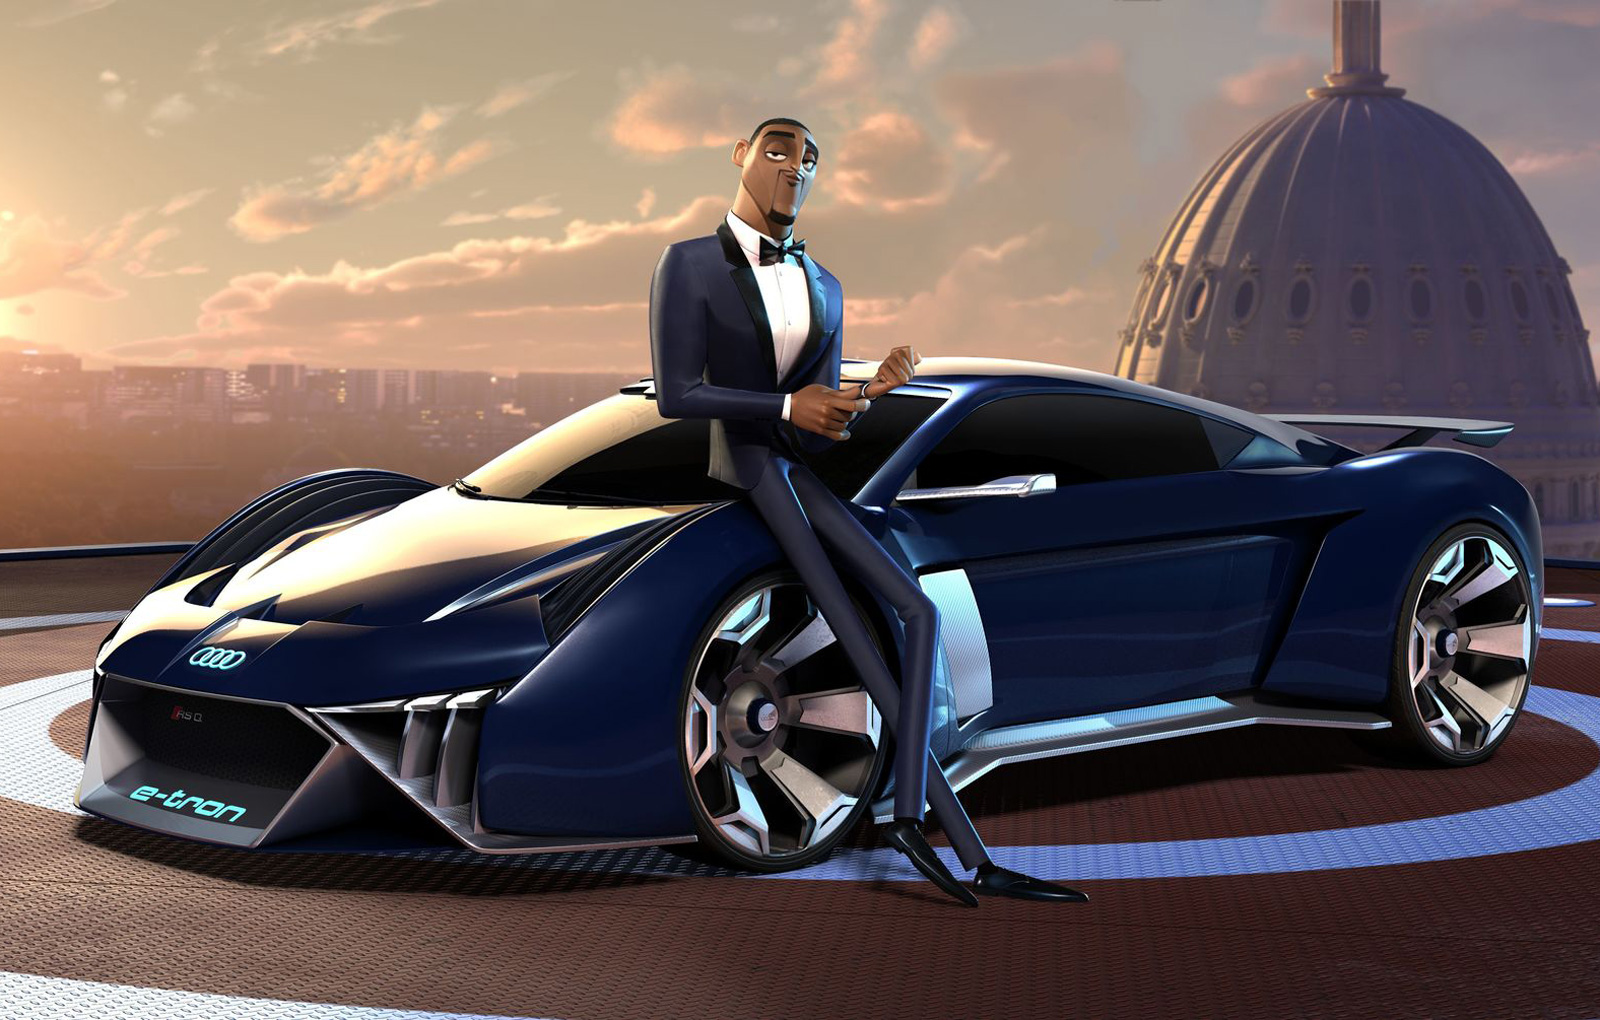 Will Smith Audi e-tron (2)